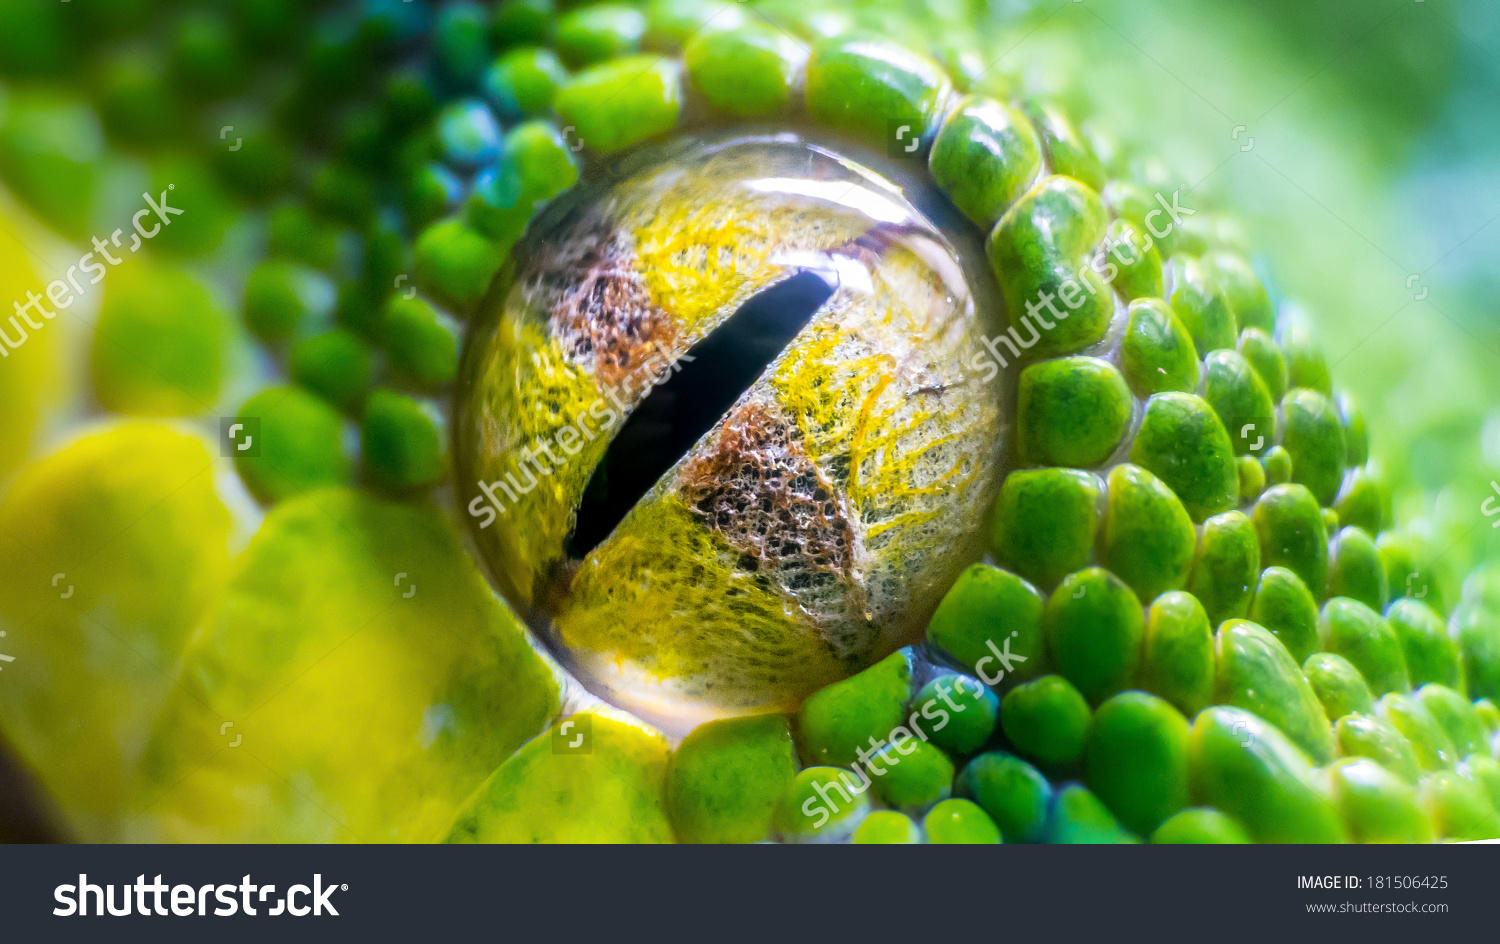 Eye Green Tree Python Morelia Viridis Stock Photo 181506425.